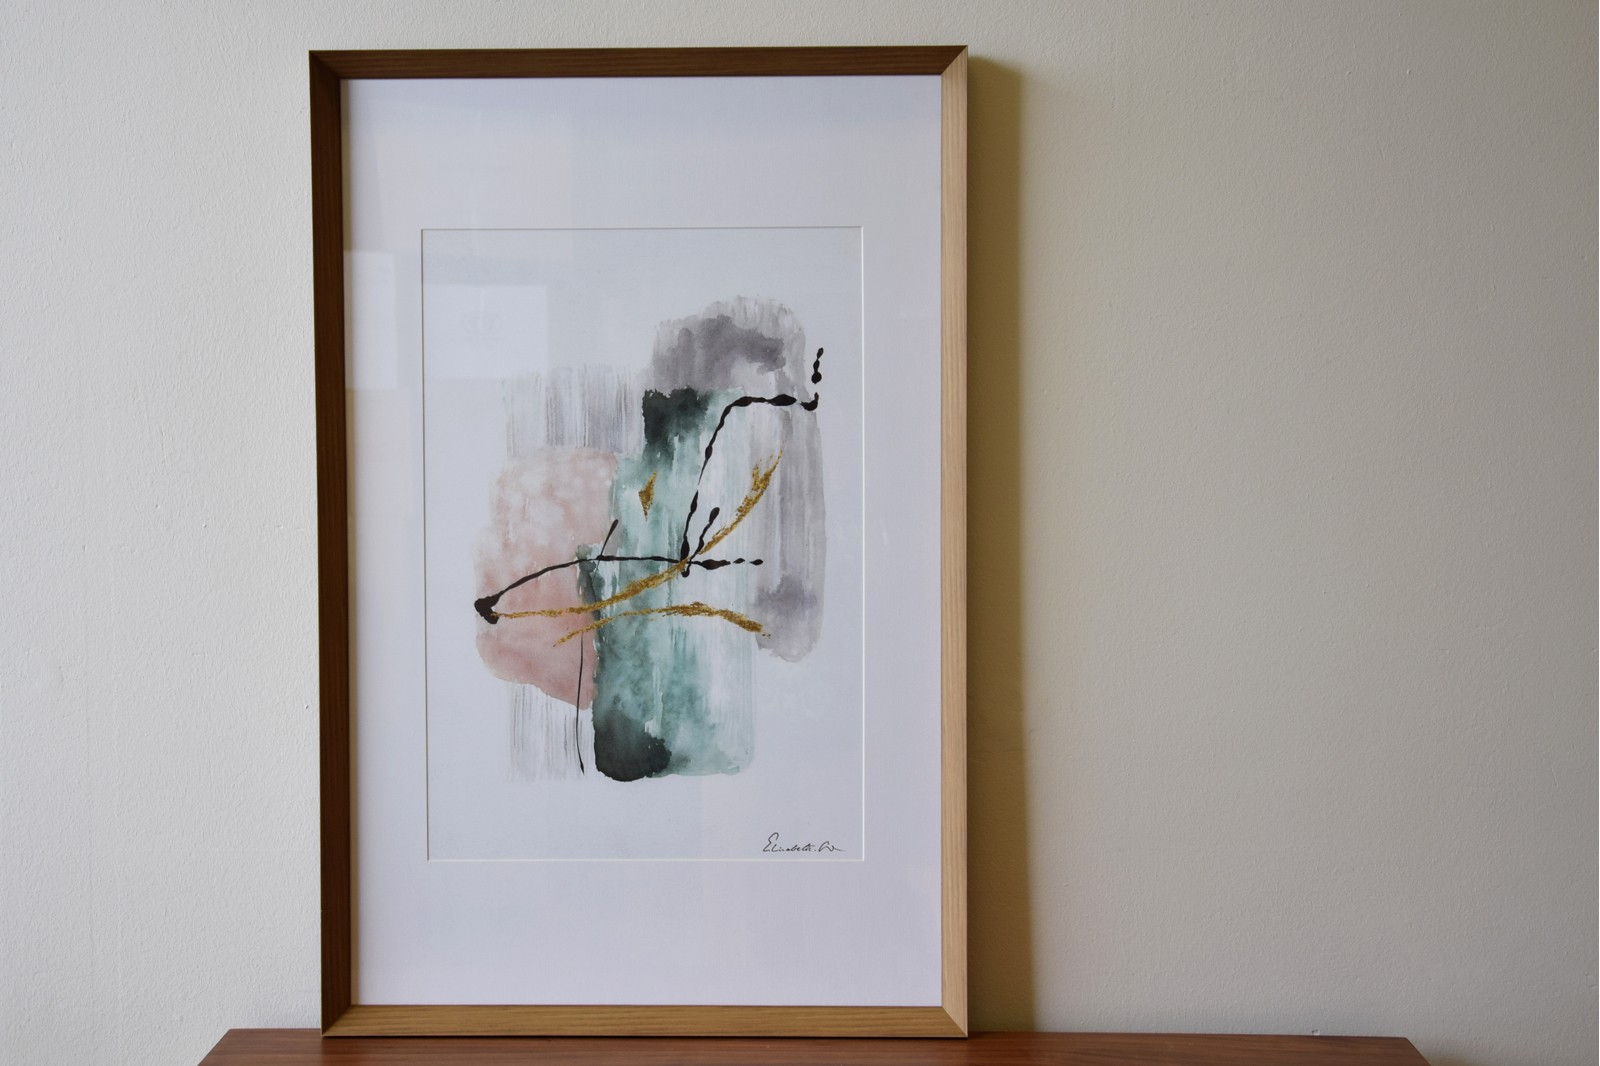 ABSTRACT PAINTING TRACES N3 ON PAPER WITH FRAME